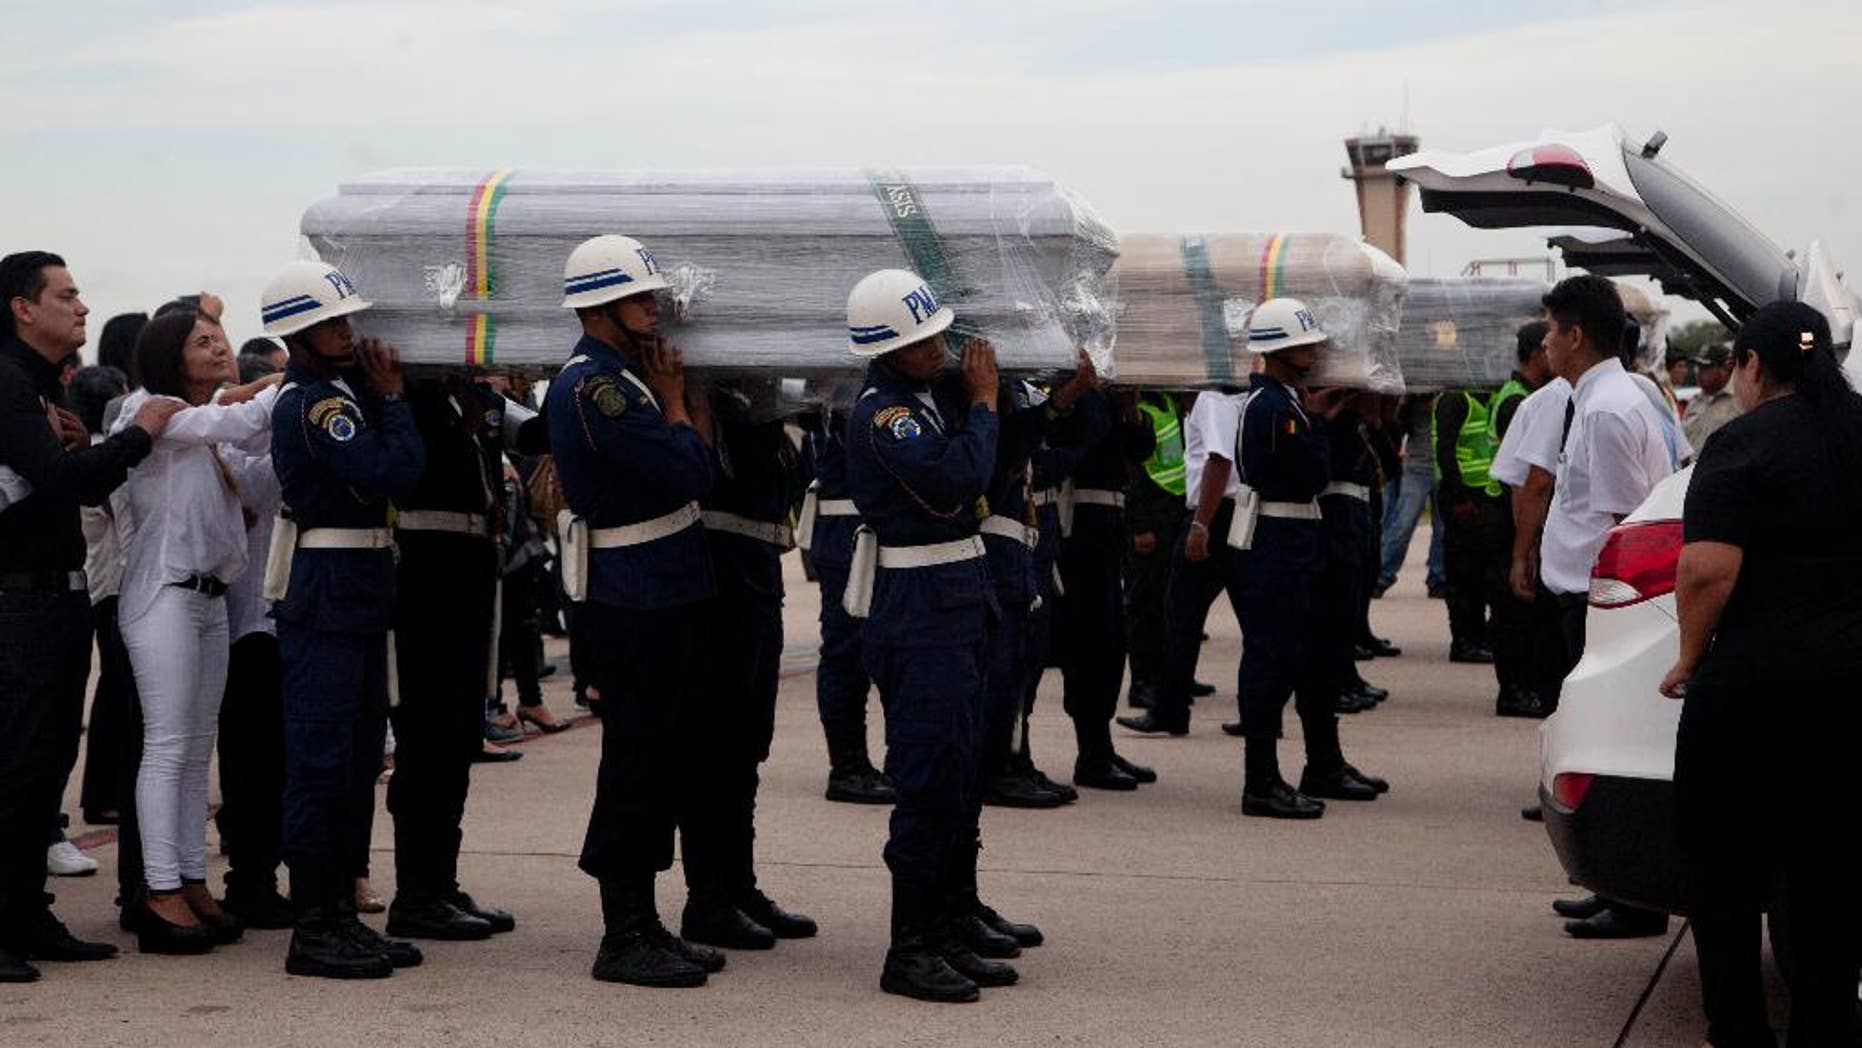 """Coffins carrying LaMia flight crew members who died in a plane crash are carried by soldiers to a hearse at the Viru Viru airport in Santa Cruz, Bolivia, Friday, Dec. 2, 2016. Victims of this week's tragic air crash in the Andes were flown home Friday as Bolivia's president called for """"drastic measures"""" against aviation officials who signed off on a flight plan that experts and even one of the charter airline's executives said should never have been attempted because of a possible fuel shortage. (AP Photo/Juan Karita)"""